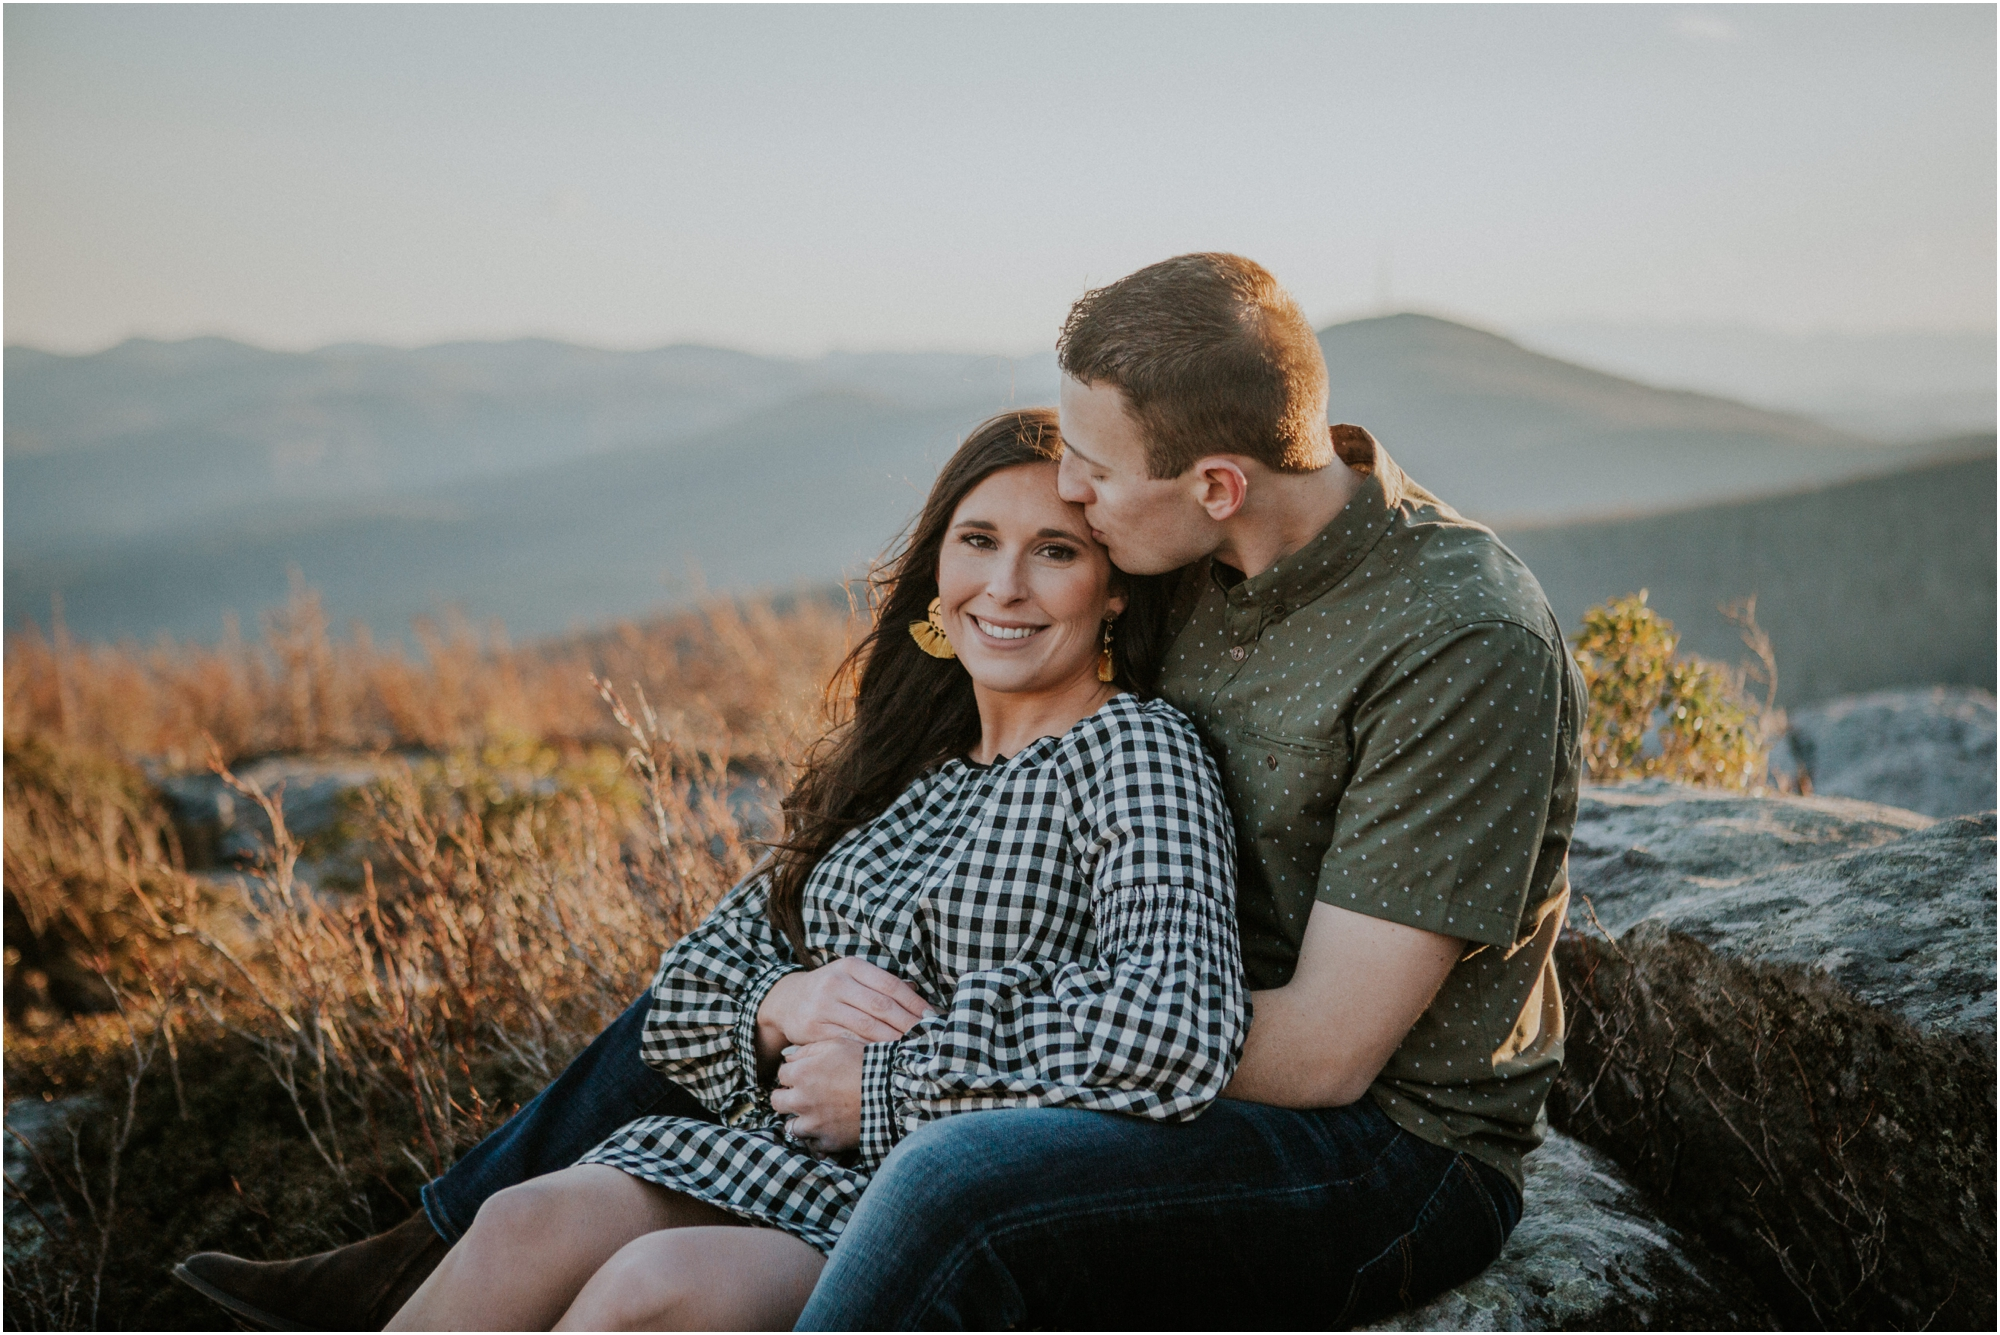 blue-ridge-parkway-engagement-session-north-carolina-boone-blowing-rock-northeast-tennessee-katy-sergent-photography_0015.jpg